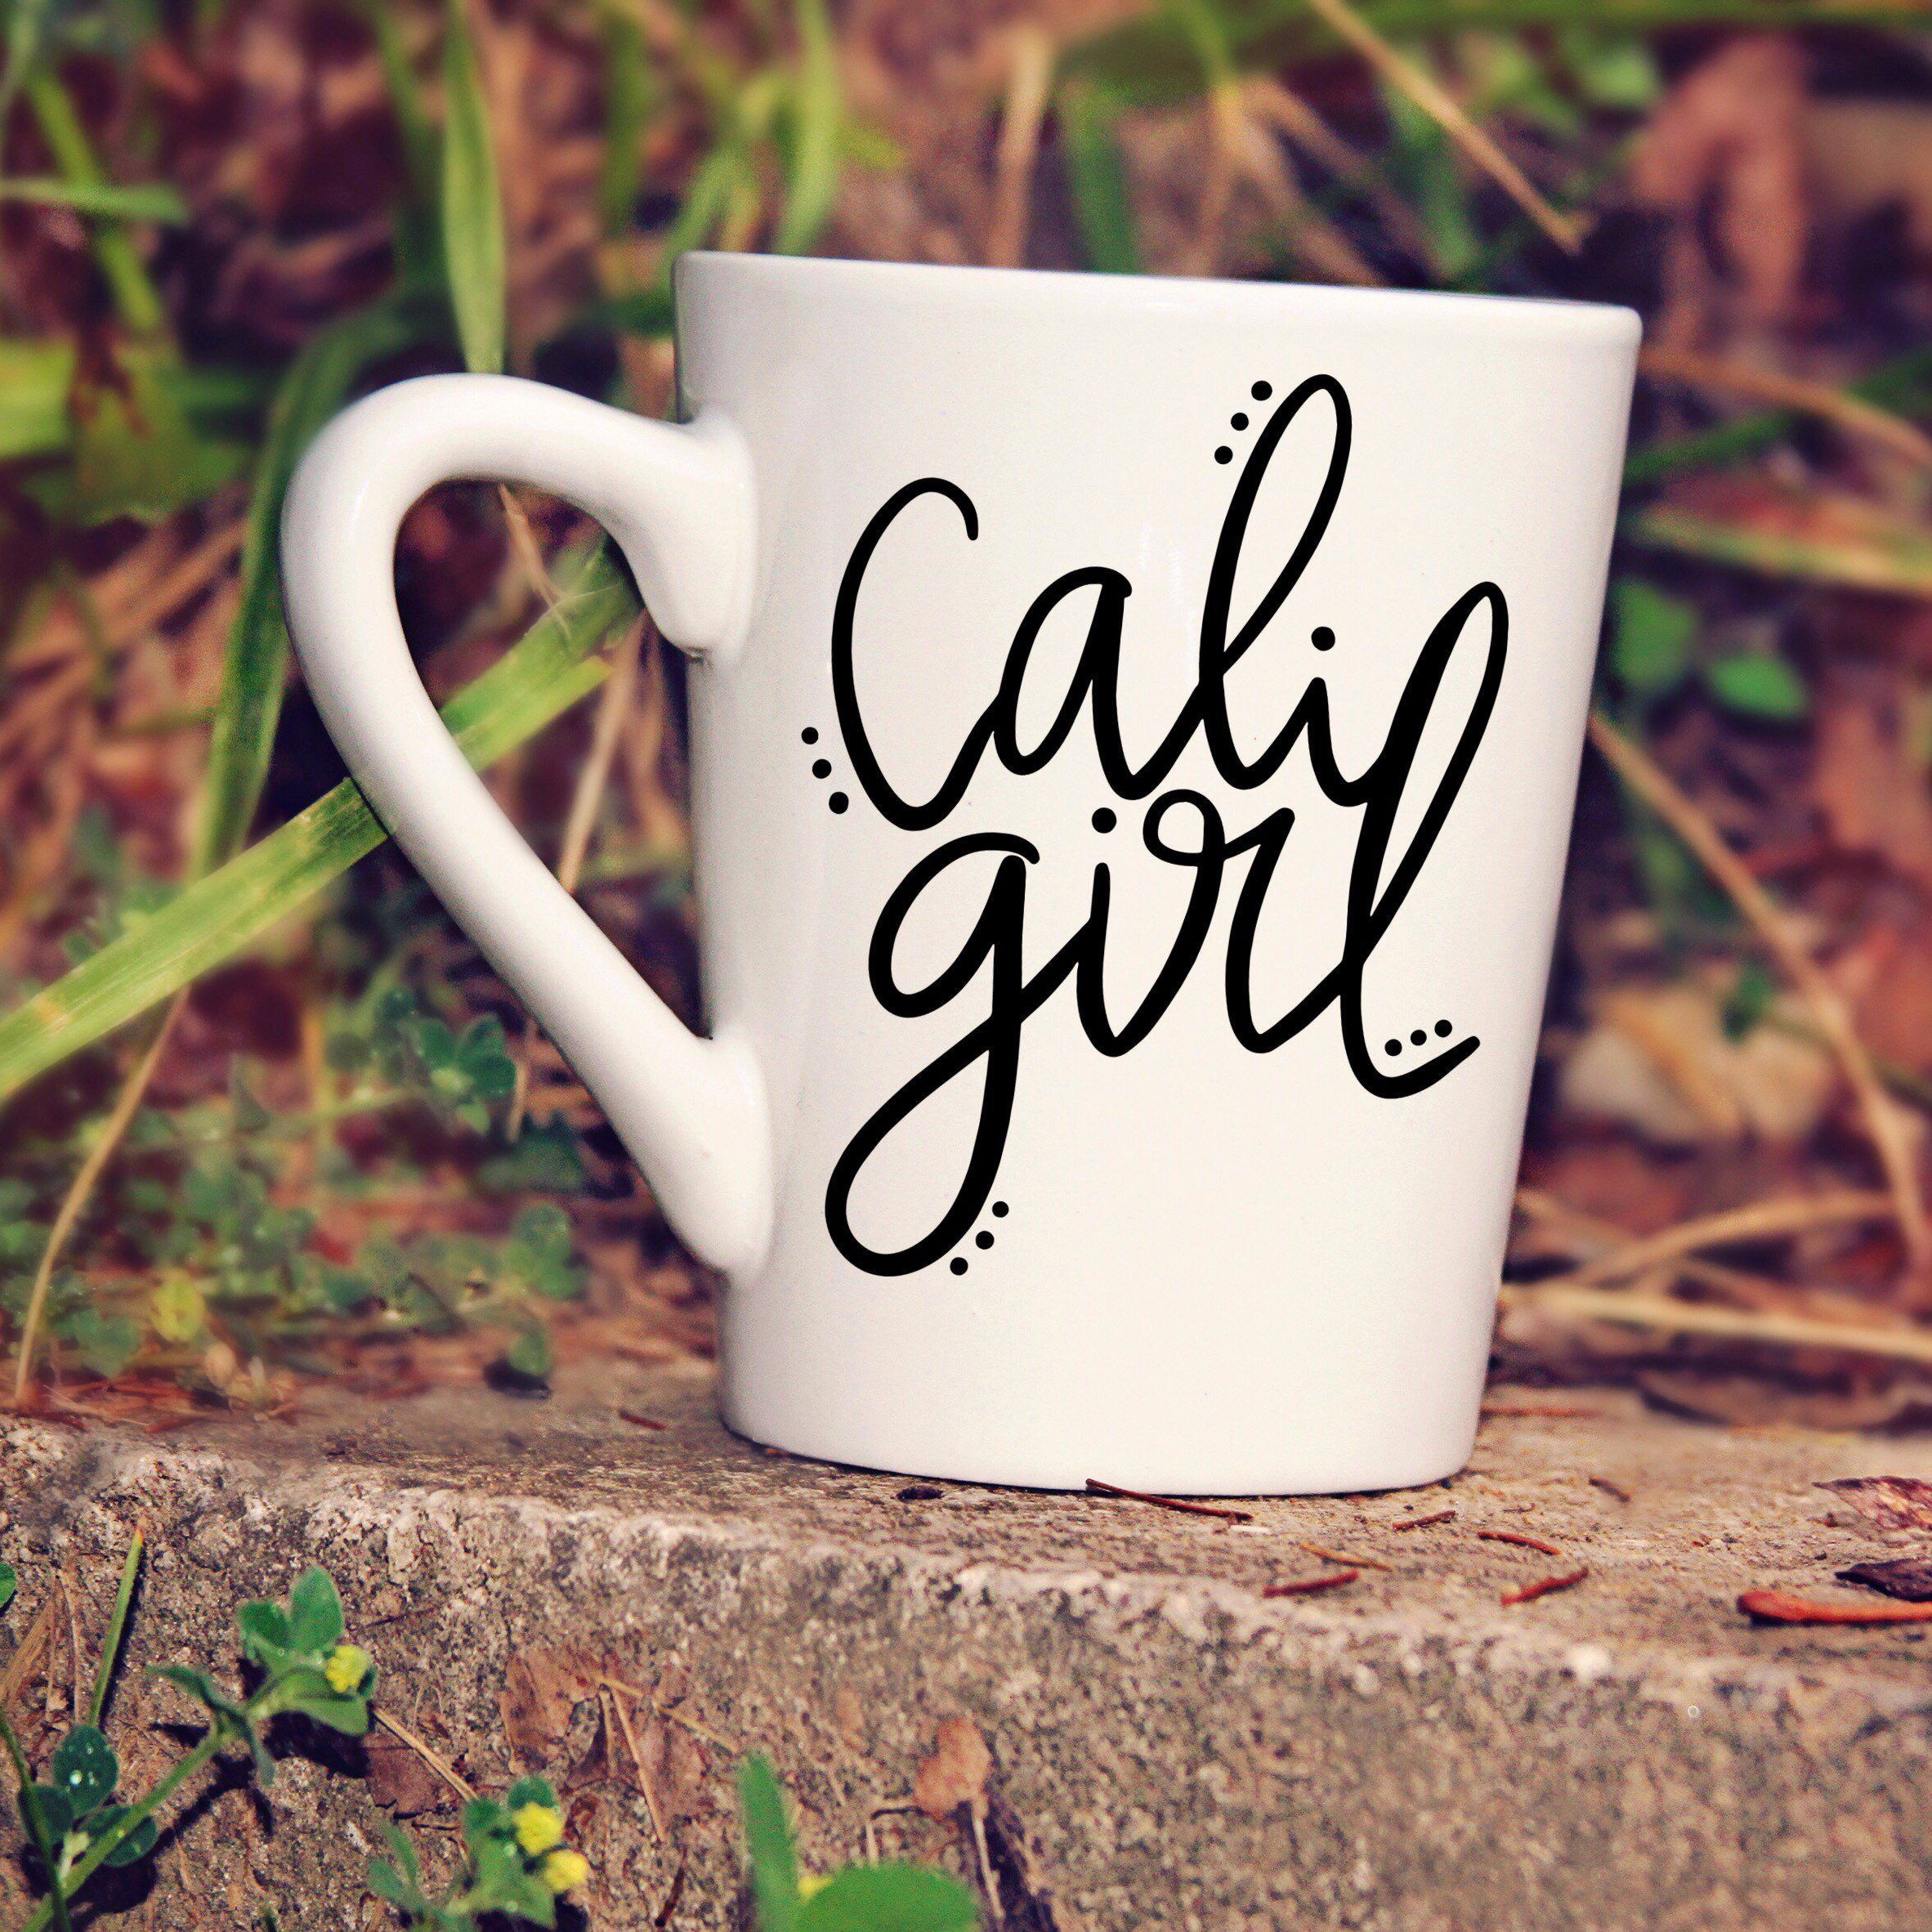 Decal** Cali girl, sassy, Gifts under 5 (With images